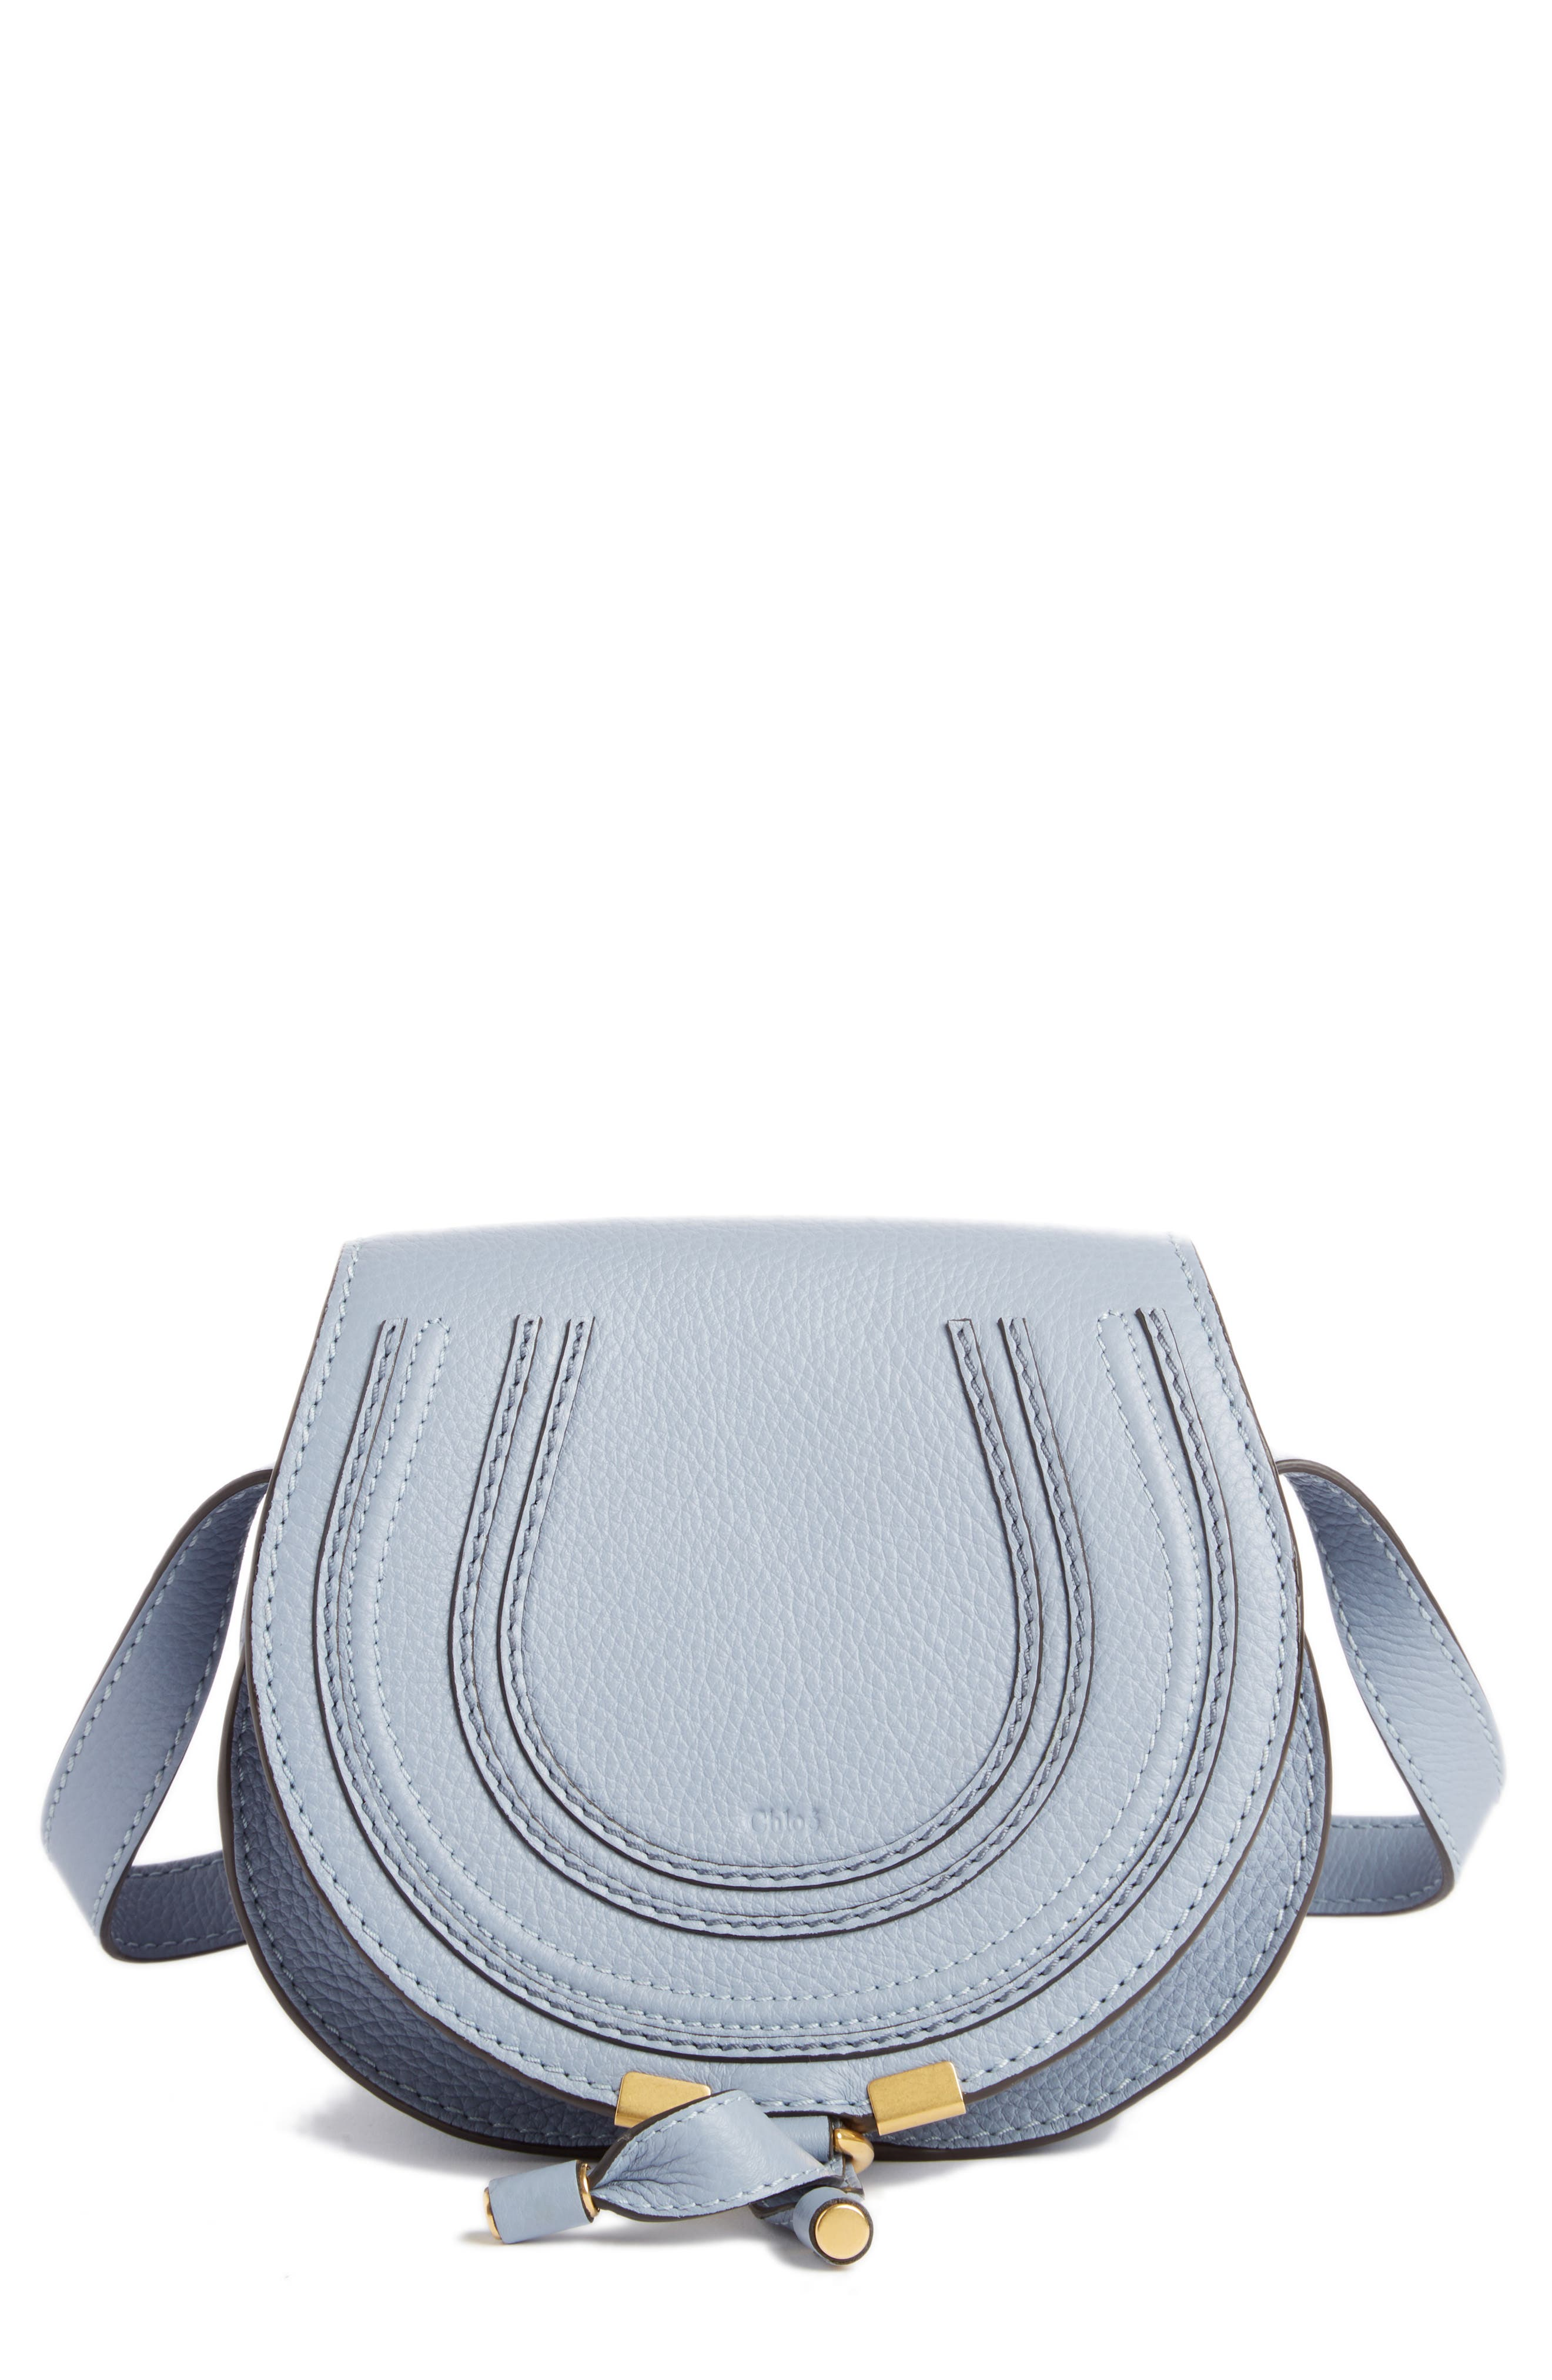 'Mini Marcie' Leather Crossbody Bag,                             Main thumbnail 1, color,                             Washed Blue